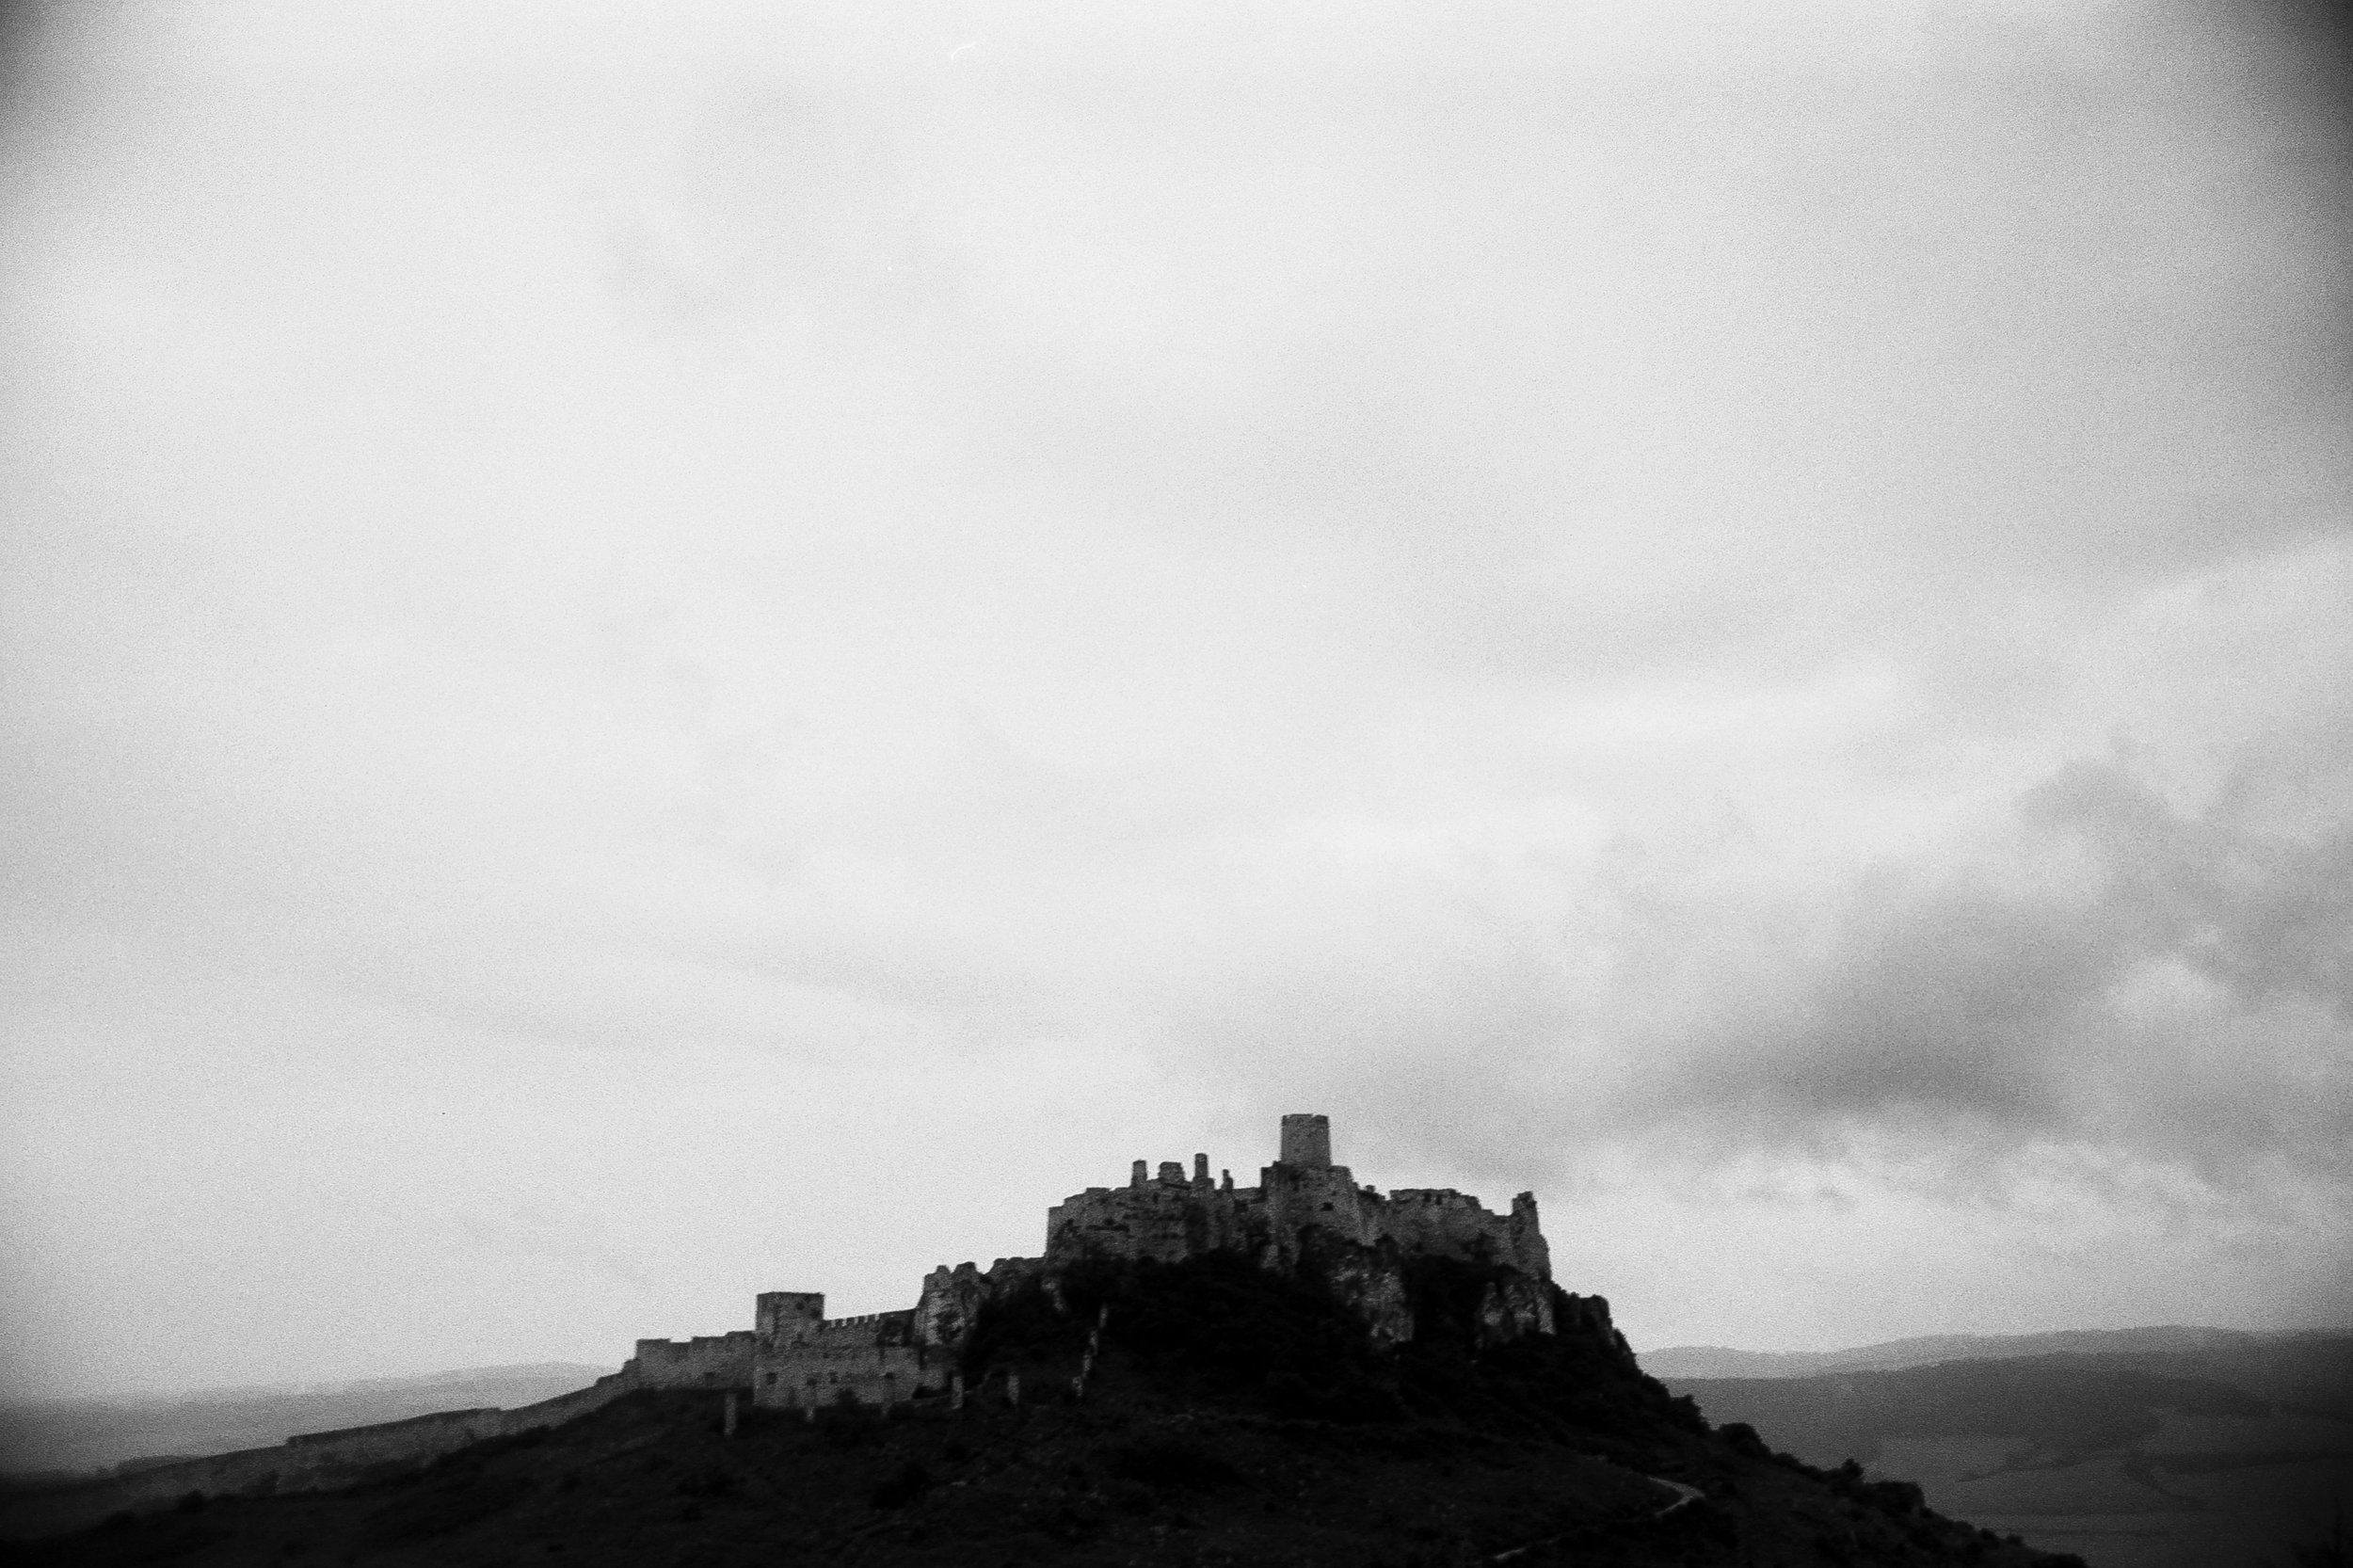 Spiš Castle from afar.